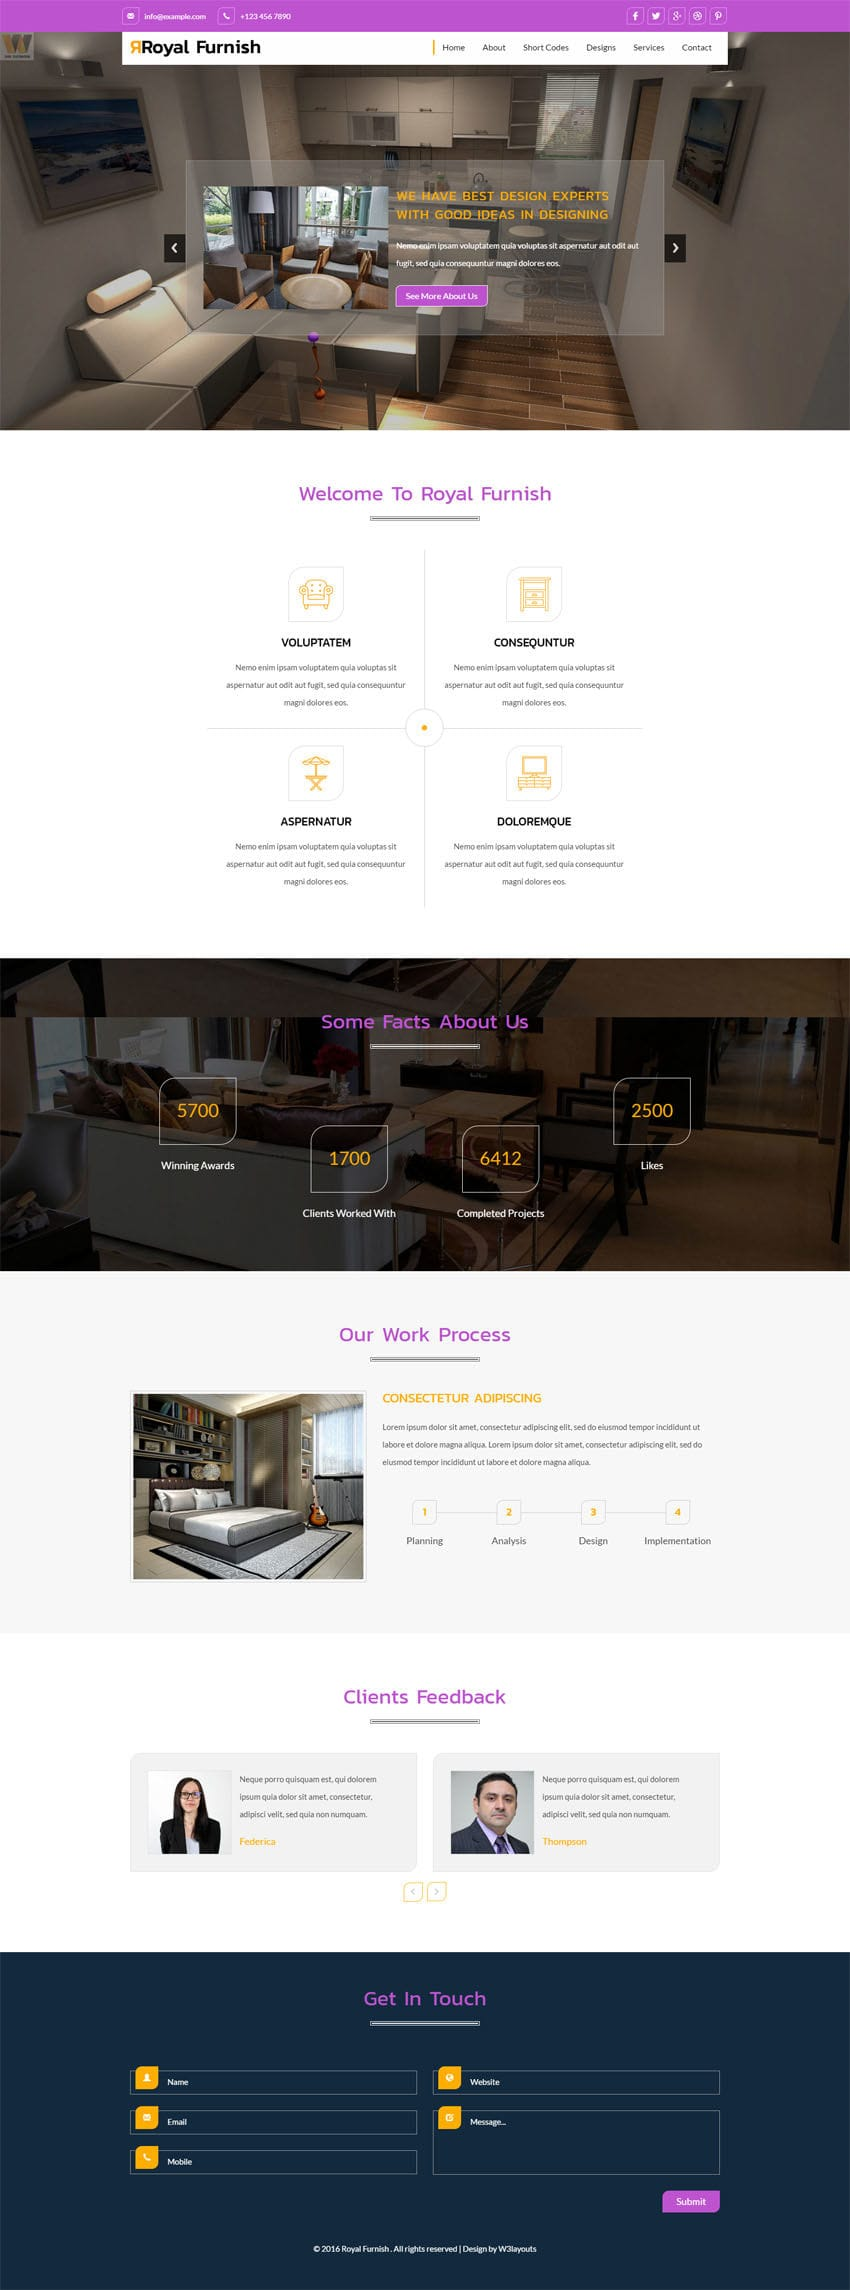 royal furnish a furniture category flat bootstrap responsive web template. Black Bedroom Furniture Sets. Home Design Ideas